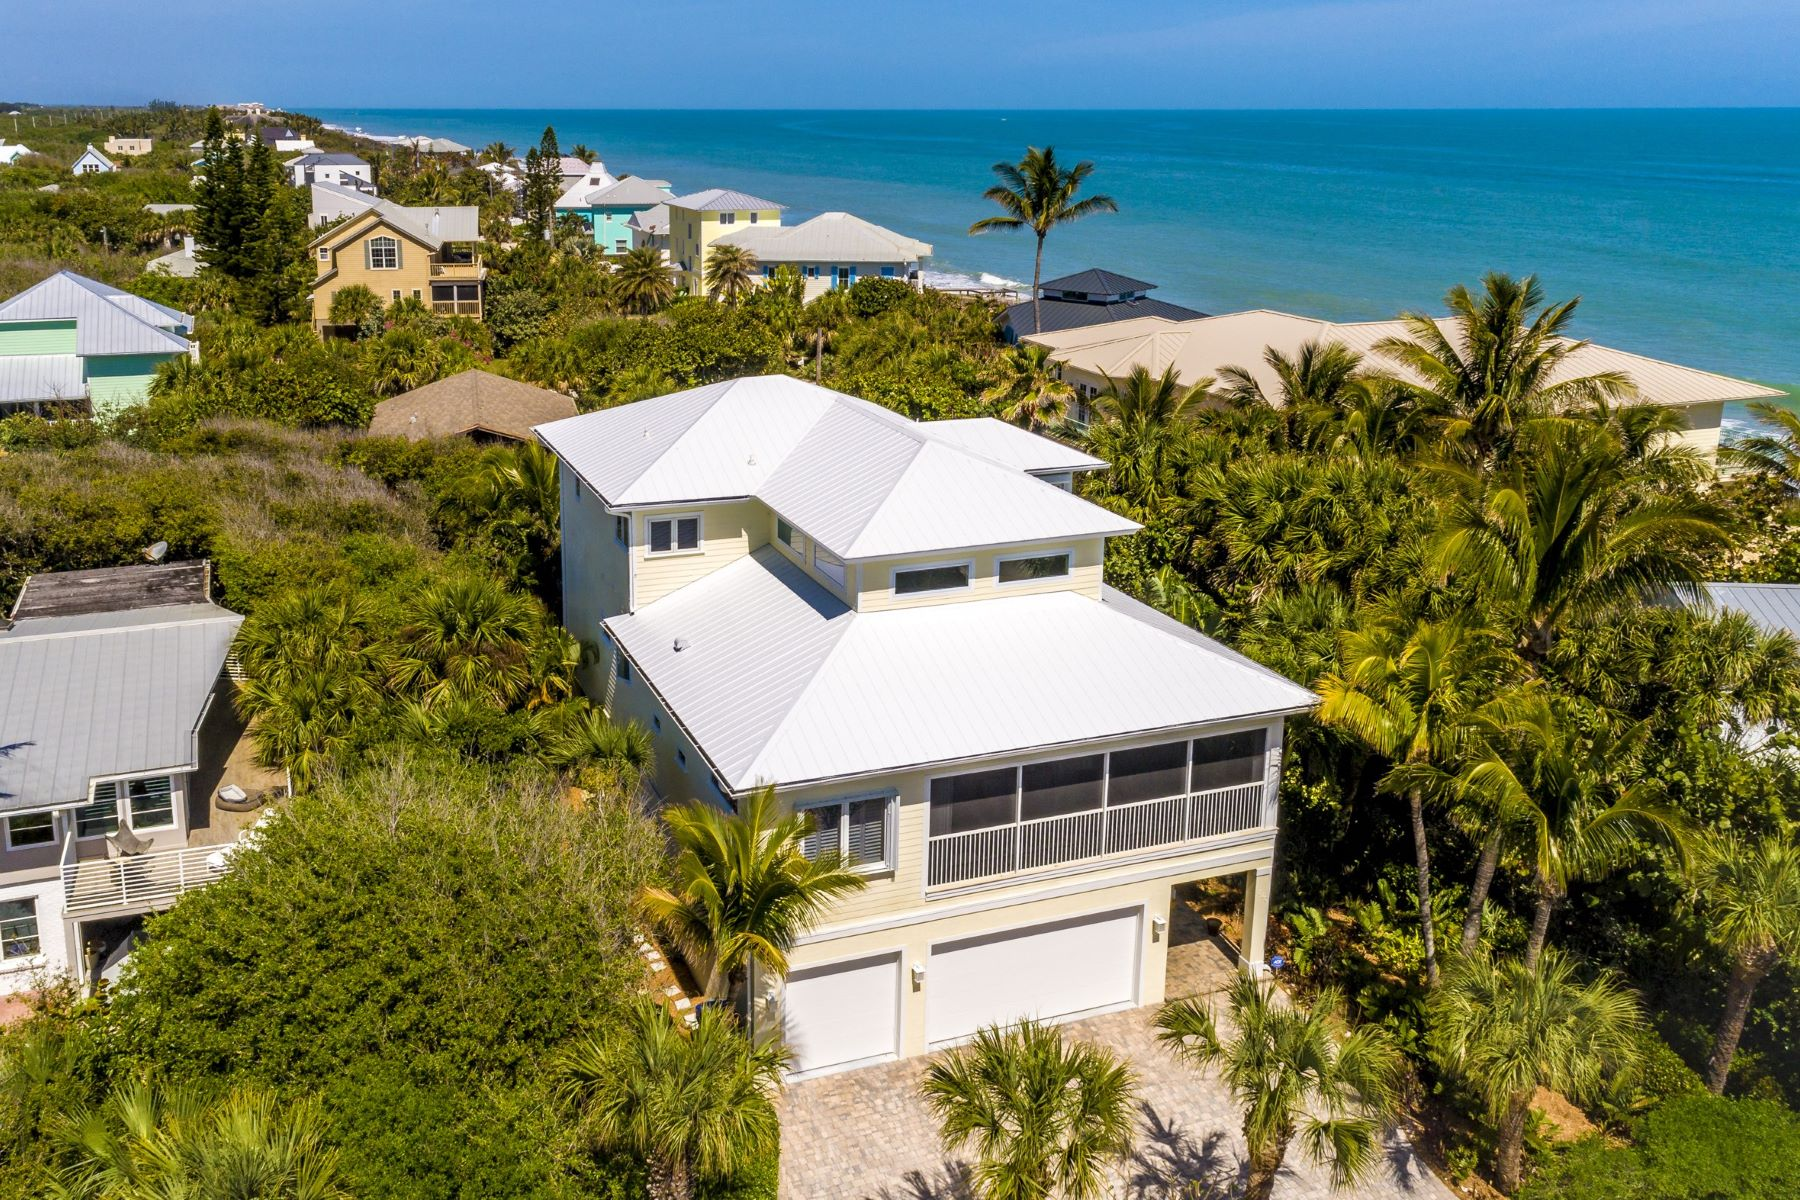 Property for Sale at 1820 E Barefoot Place Vero Beach, Florida 32963 United States